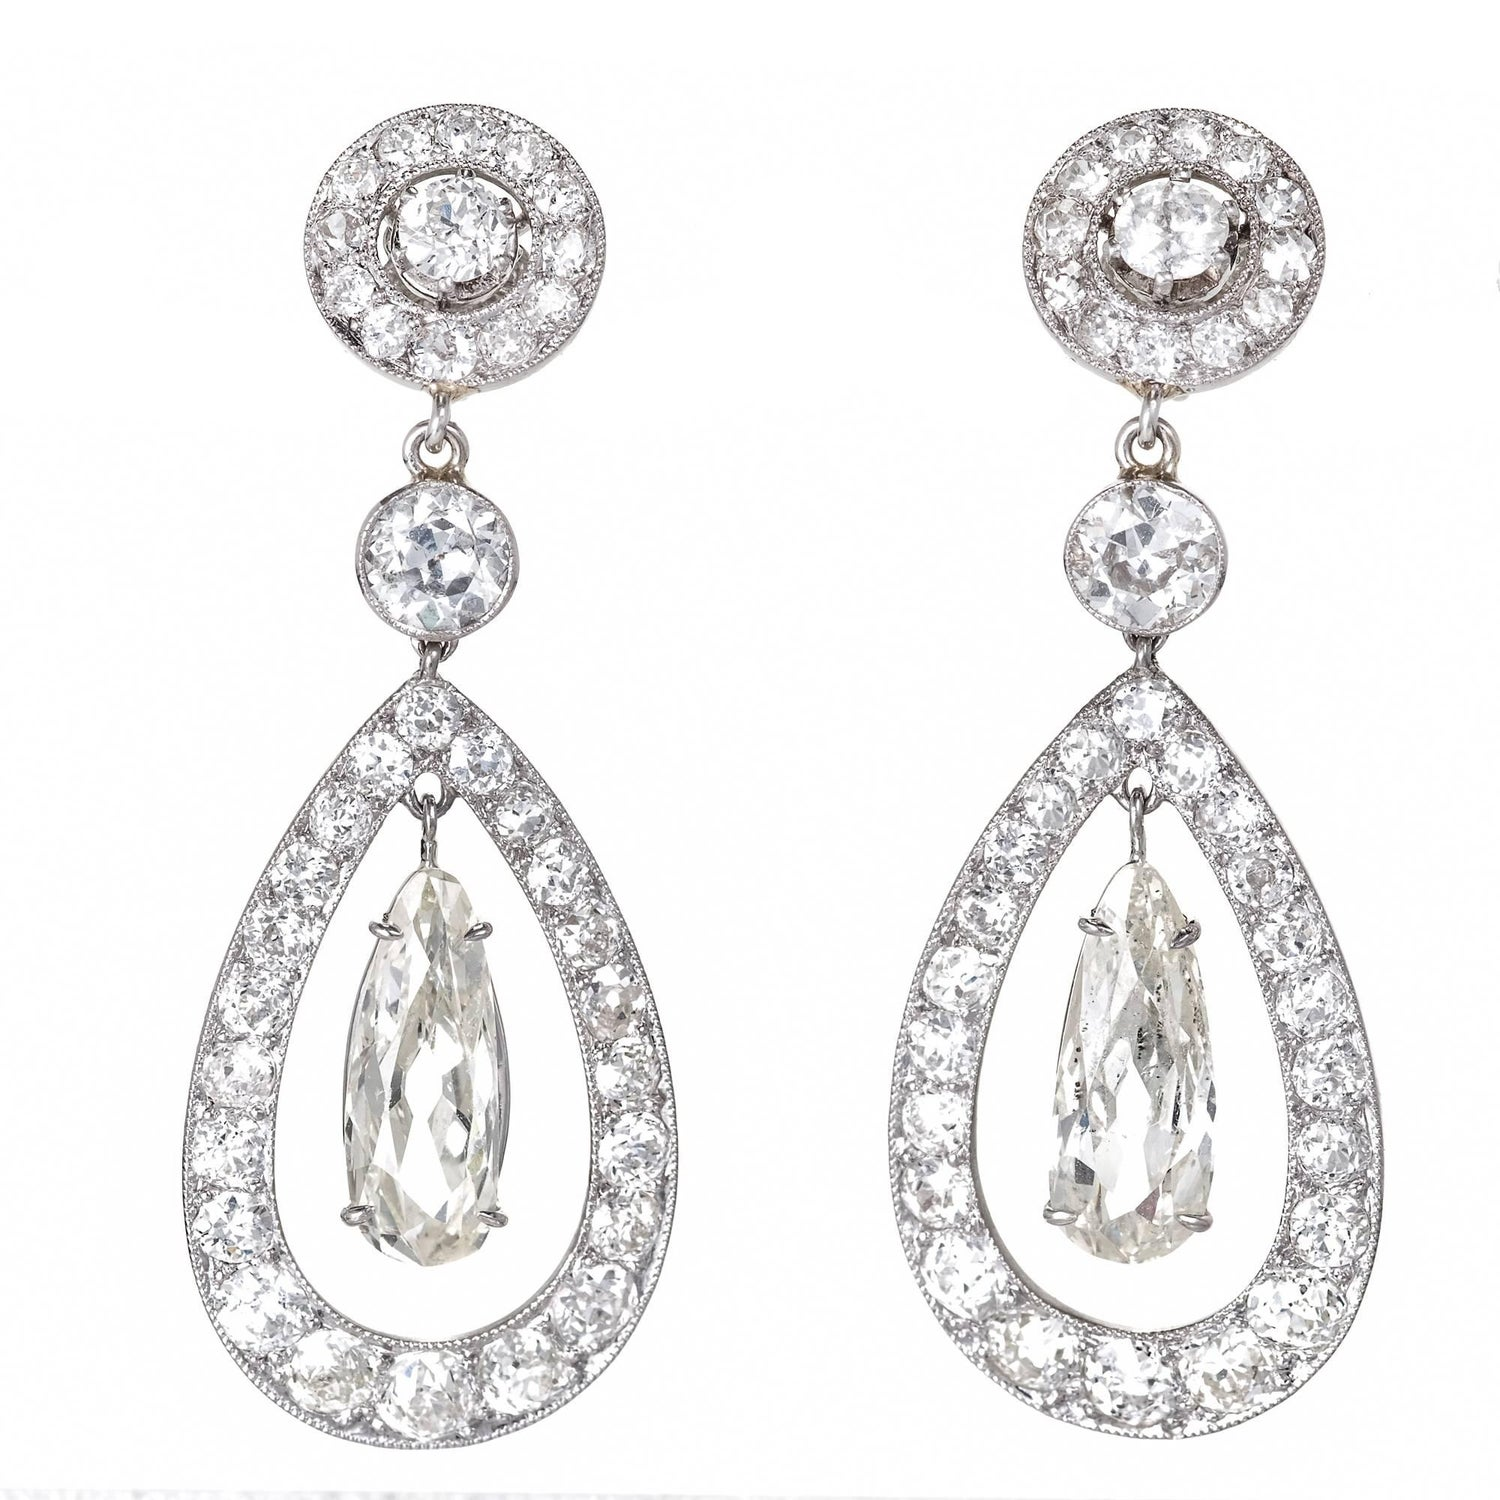 Early 1900s Earrings 81 For Sale at 1stdibs